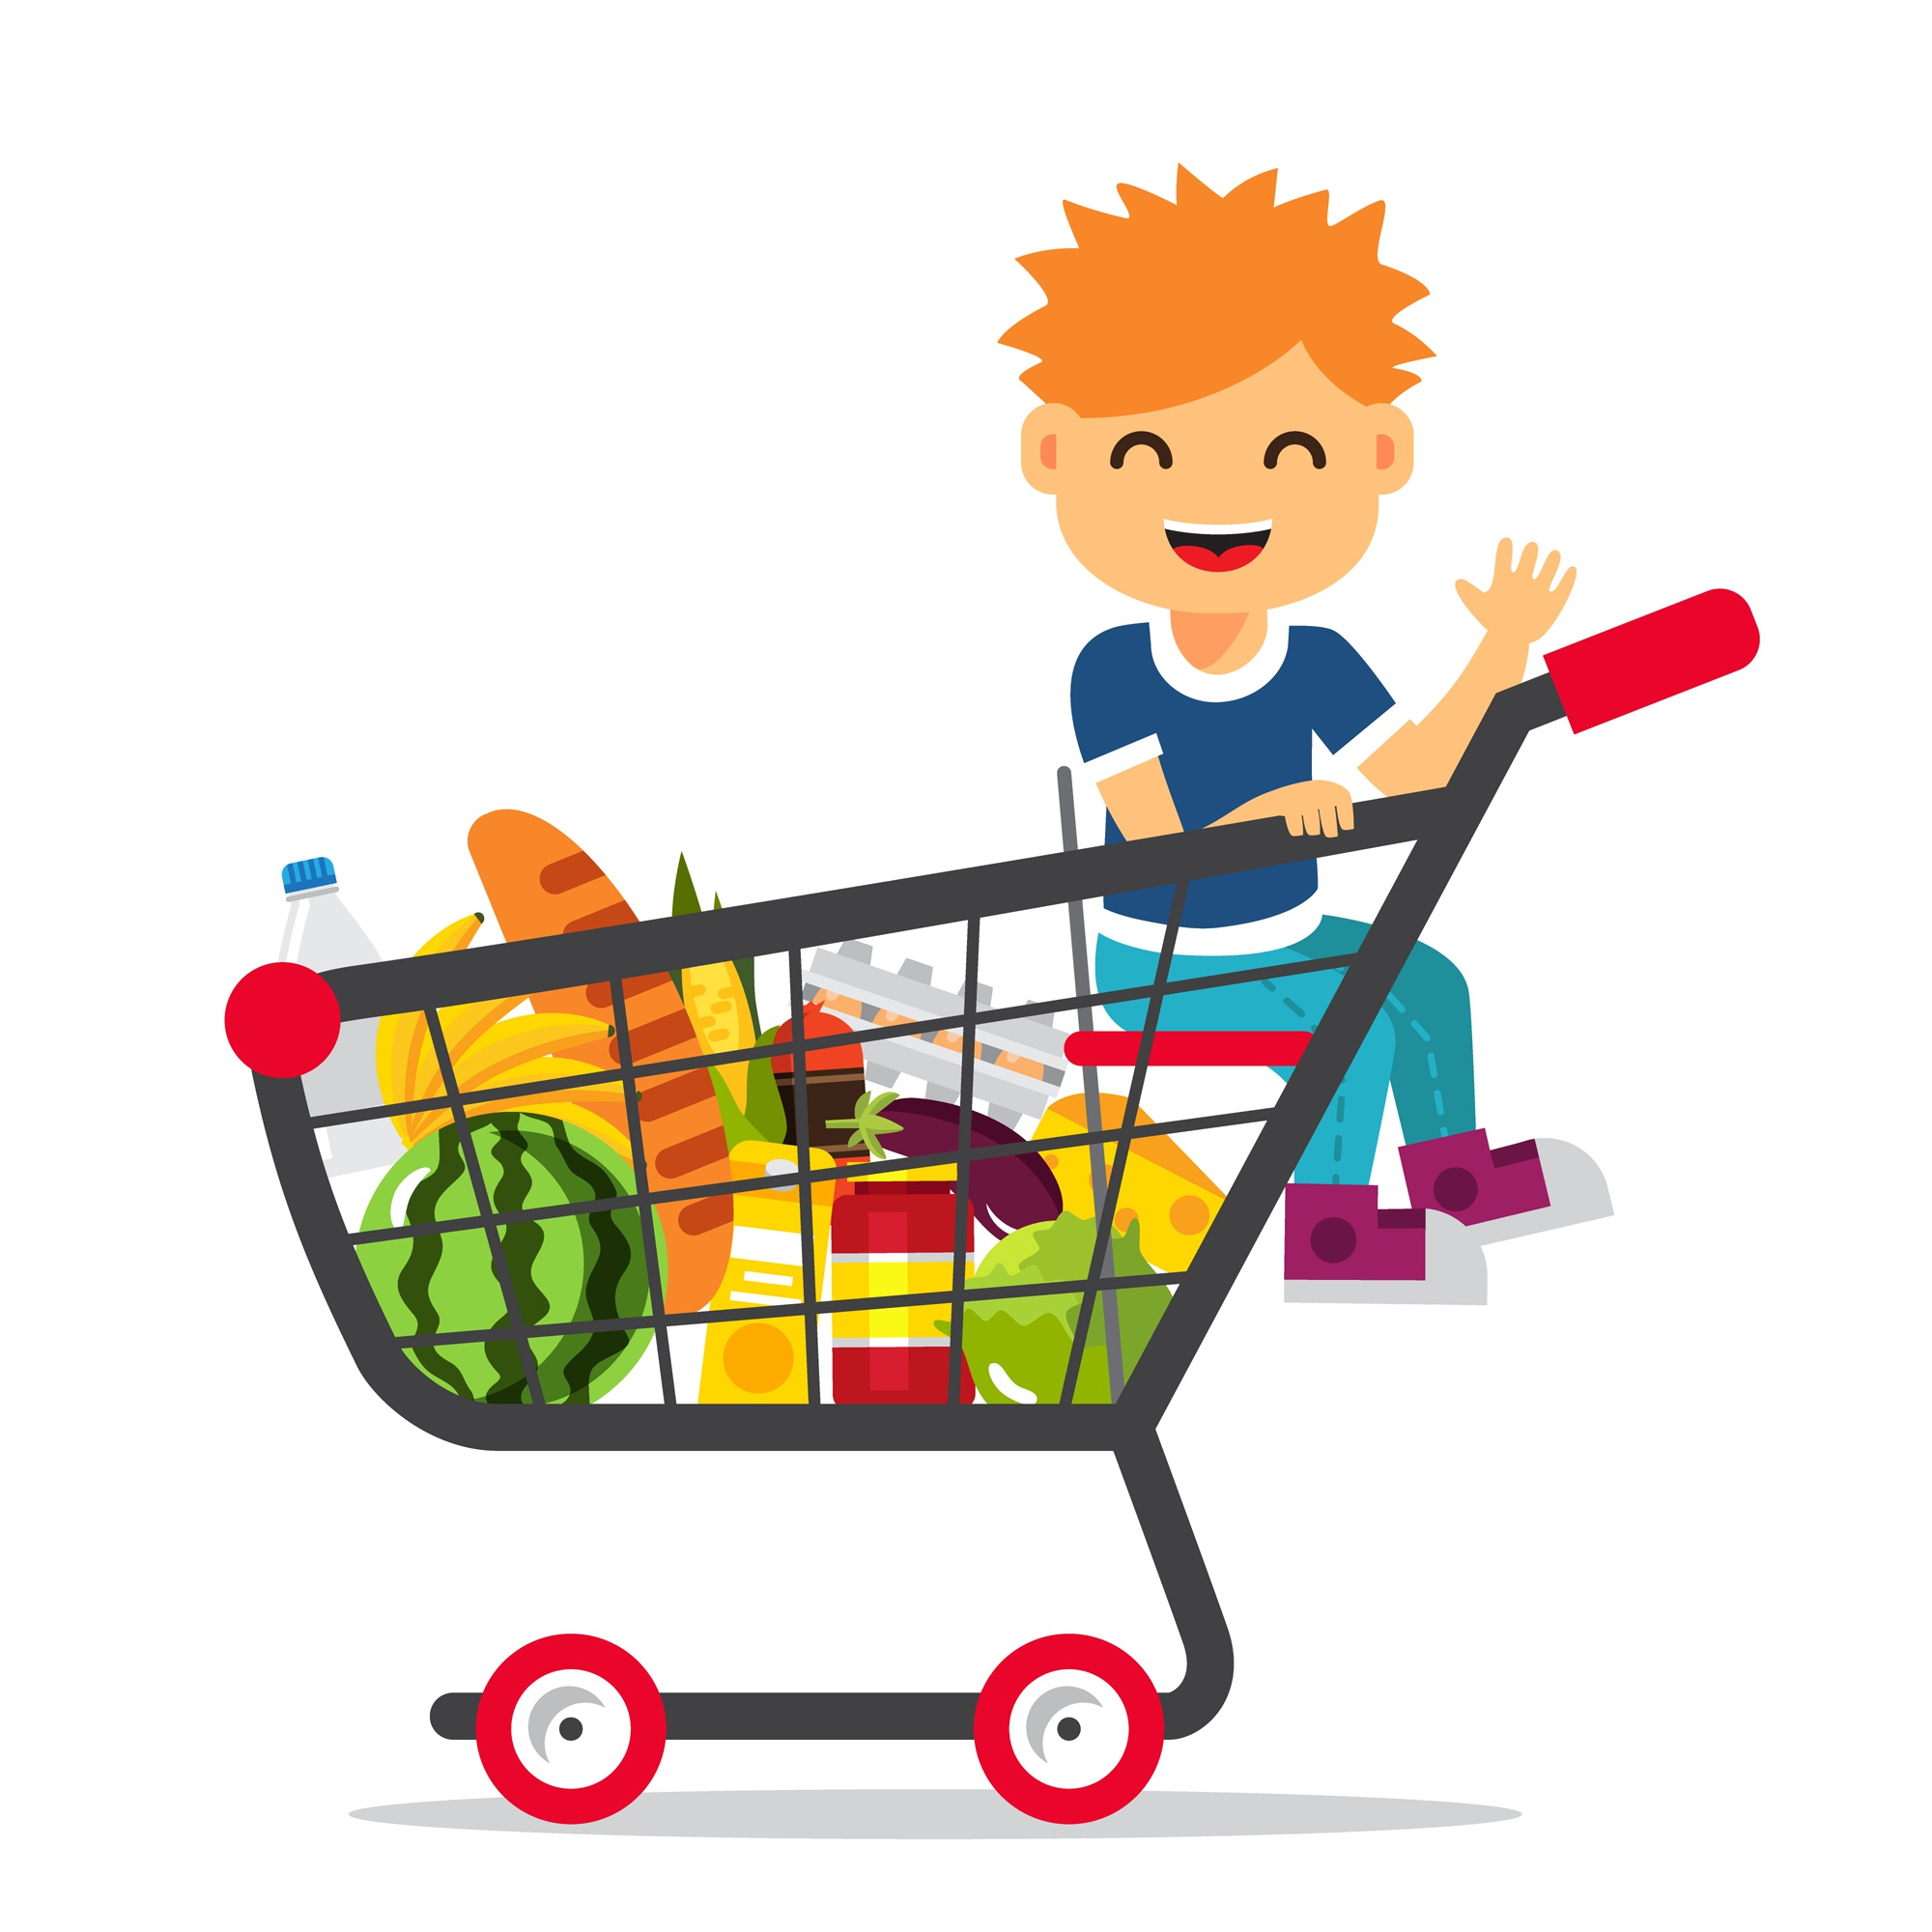 Kid sitting in a supermarket shopping cart